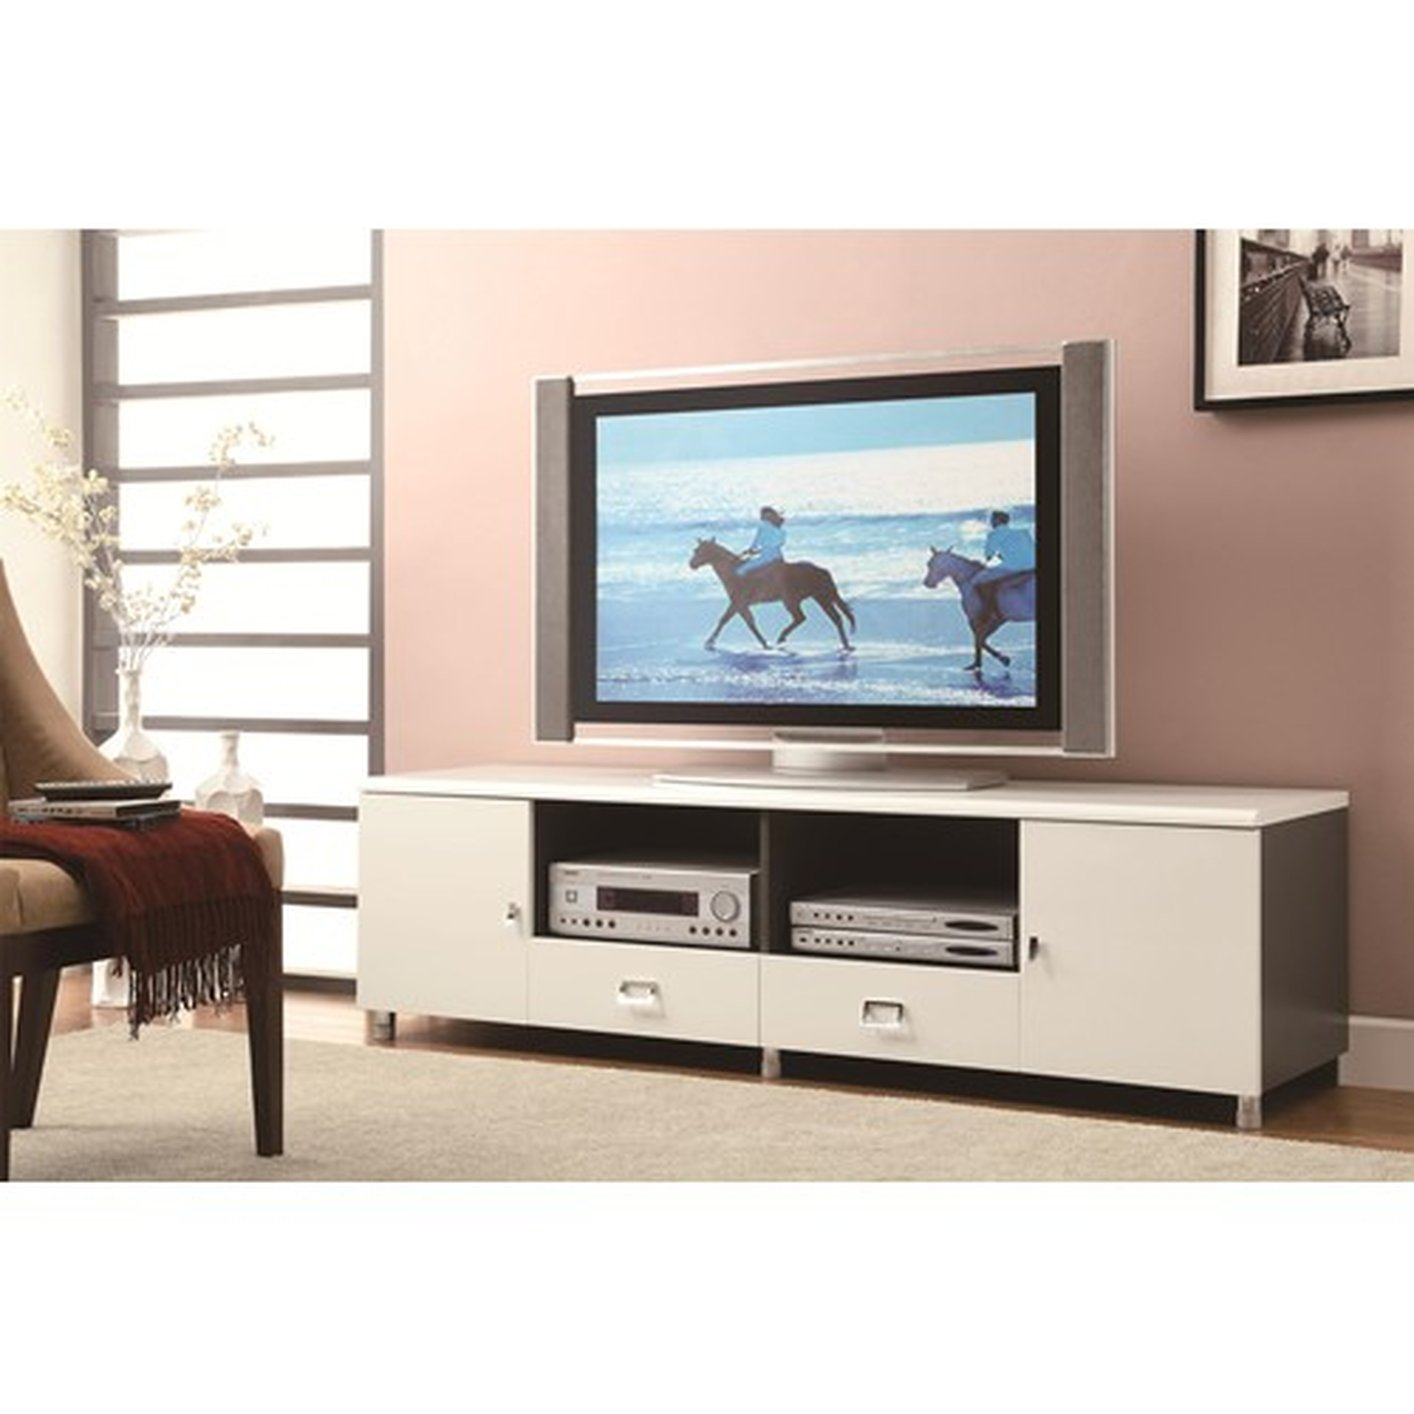 Coaster 700910 Silver Metal TV Stand